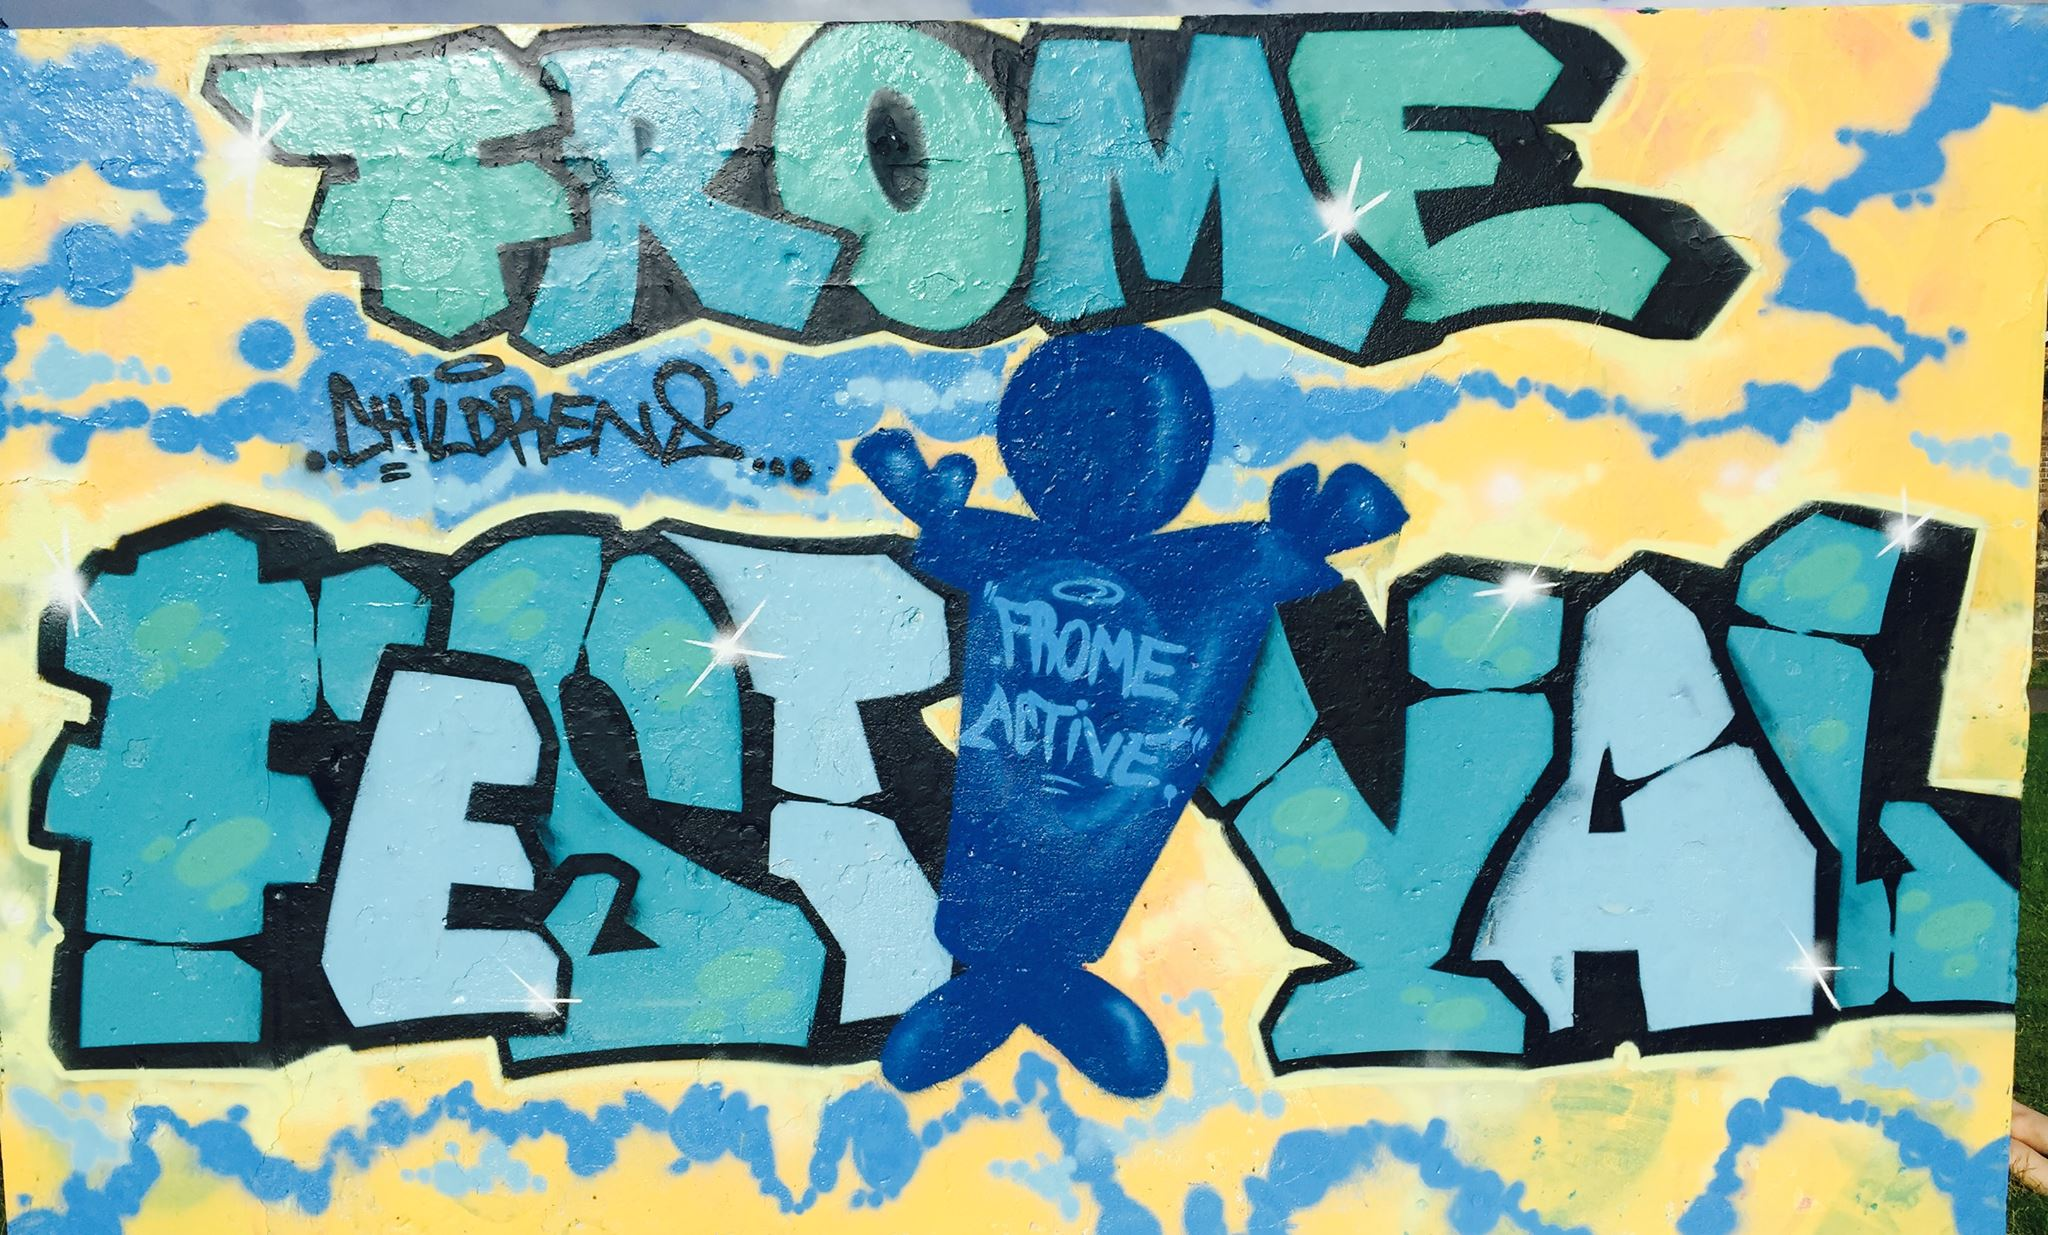 frome-active